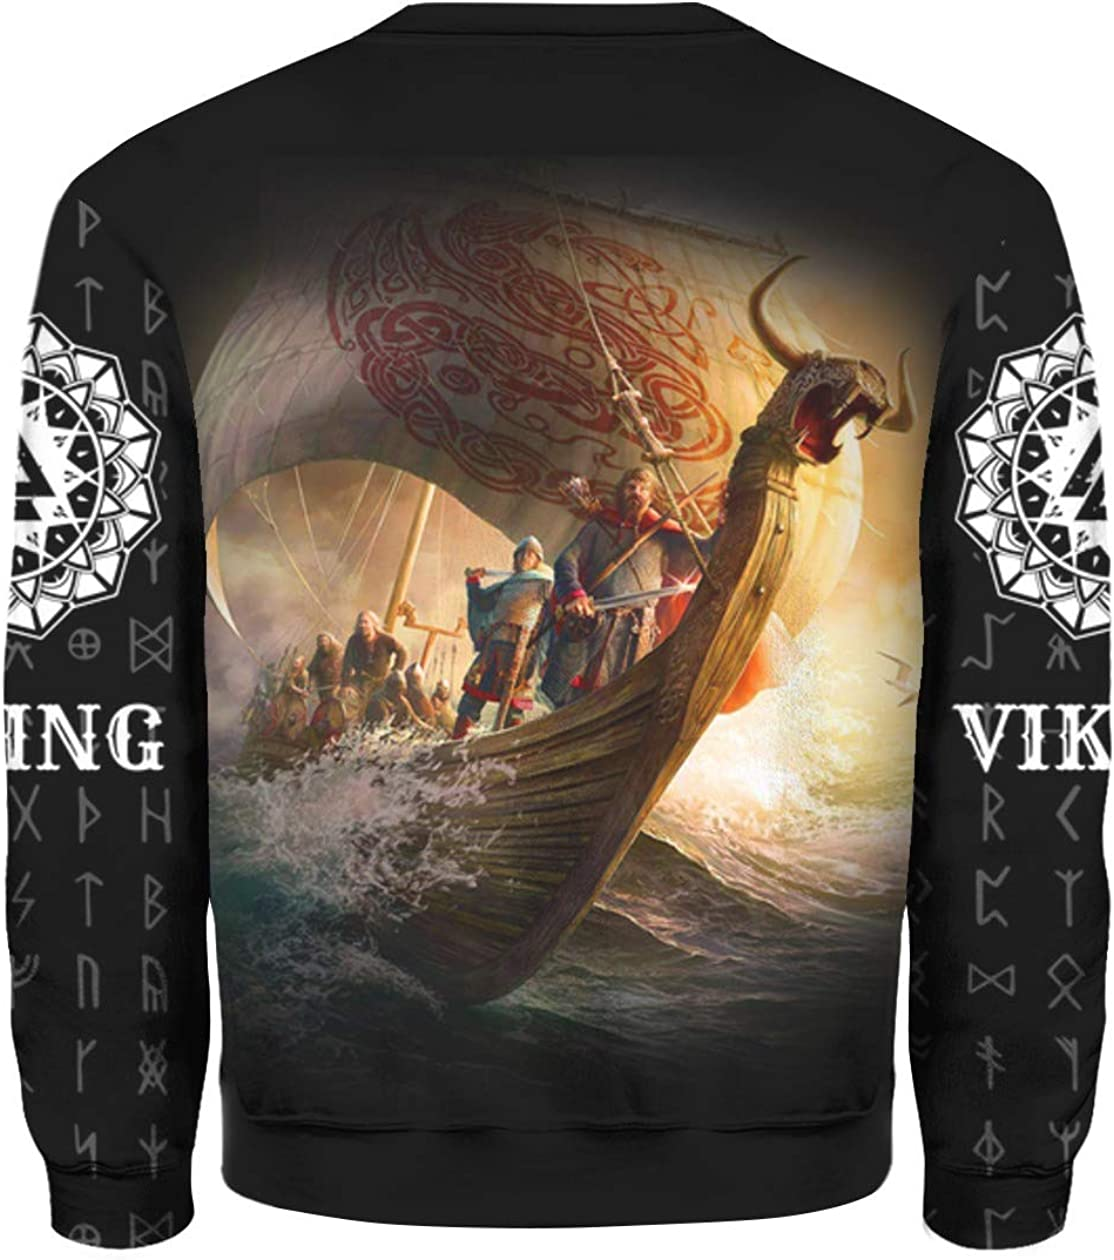 Viking Boat 3D All Over Sublimation Printing Shirt